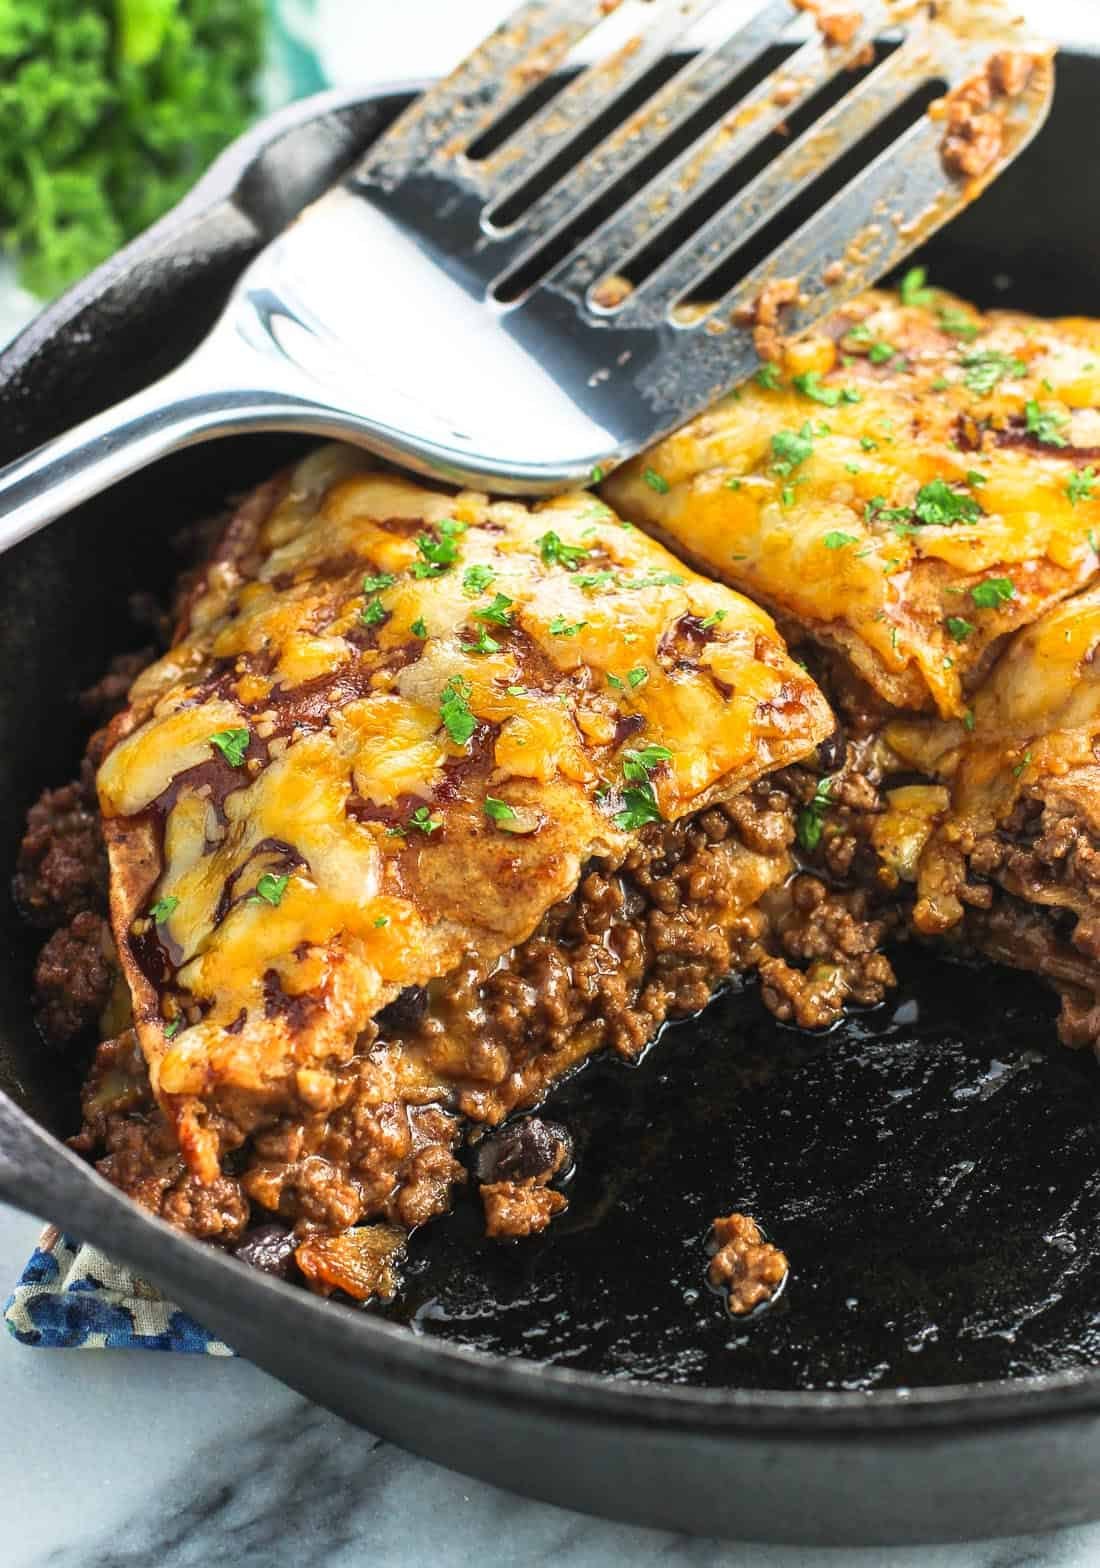 Beef tortilla pie in a cast iron skillet with one wedge removed, with a metal spatula resting on top